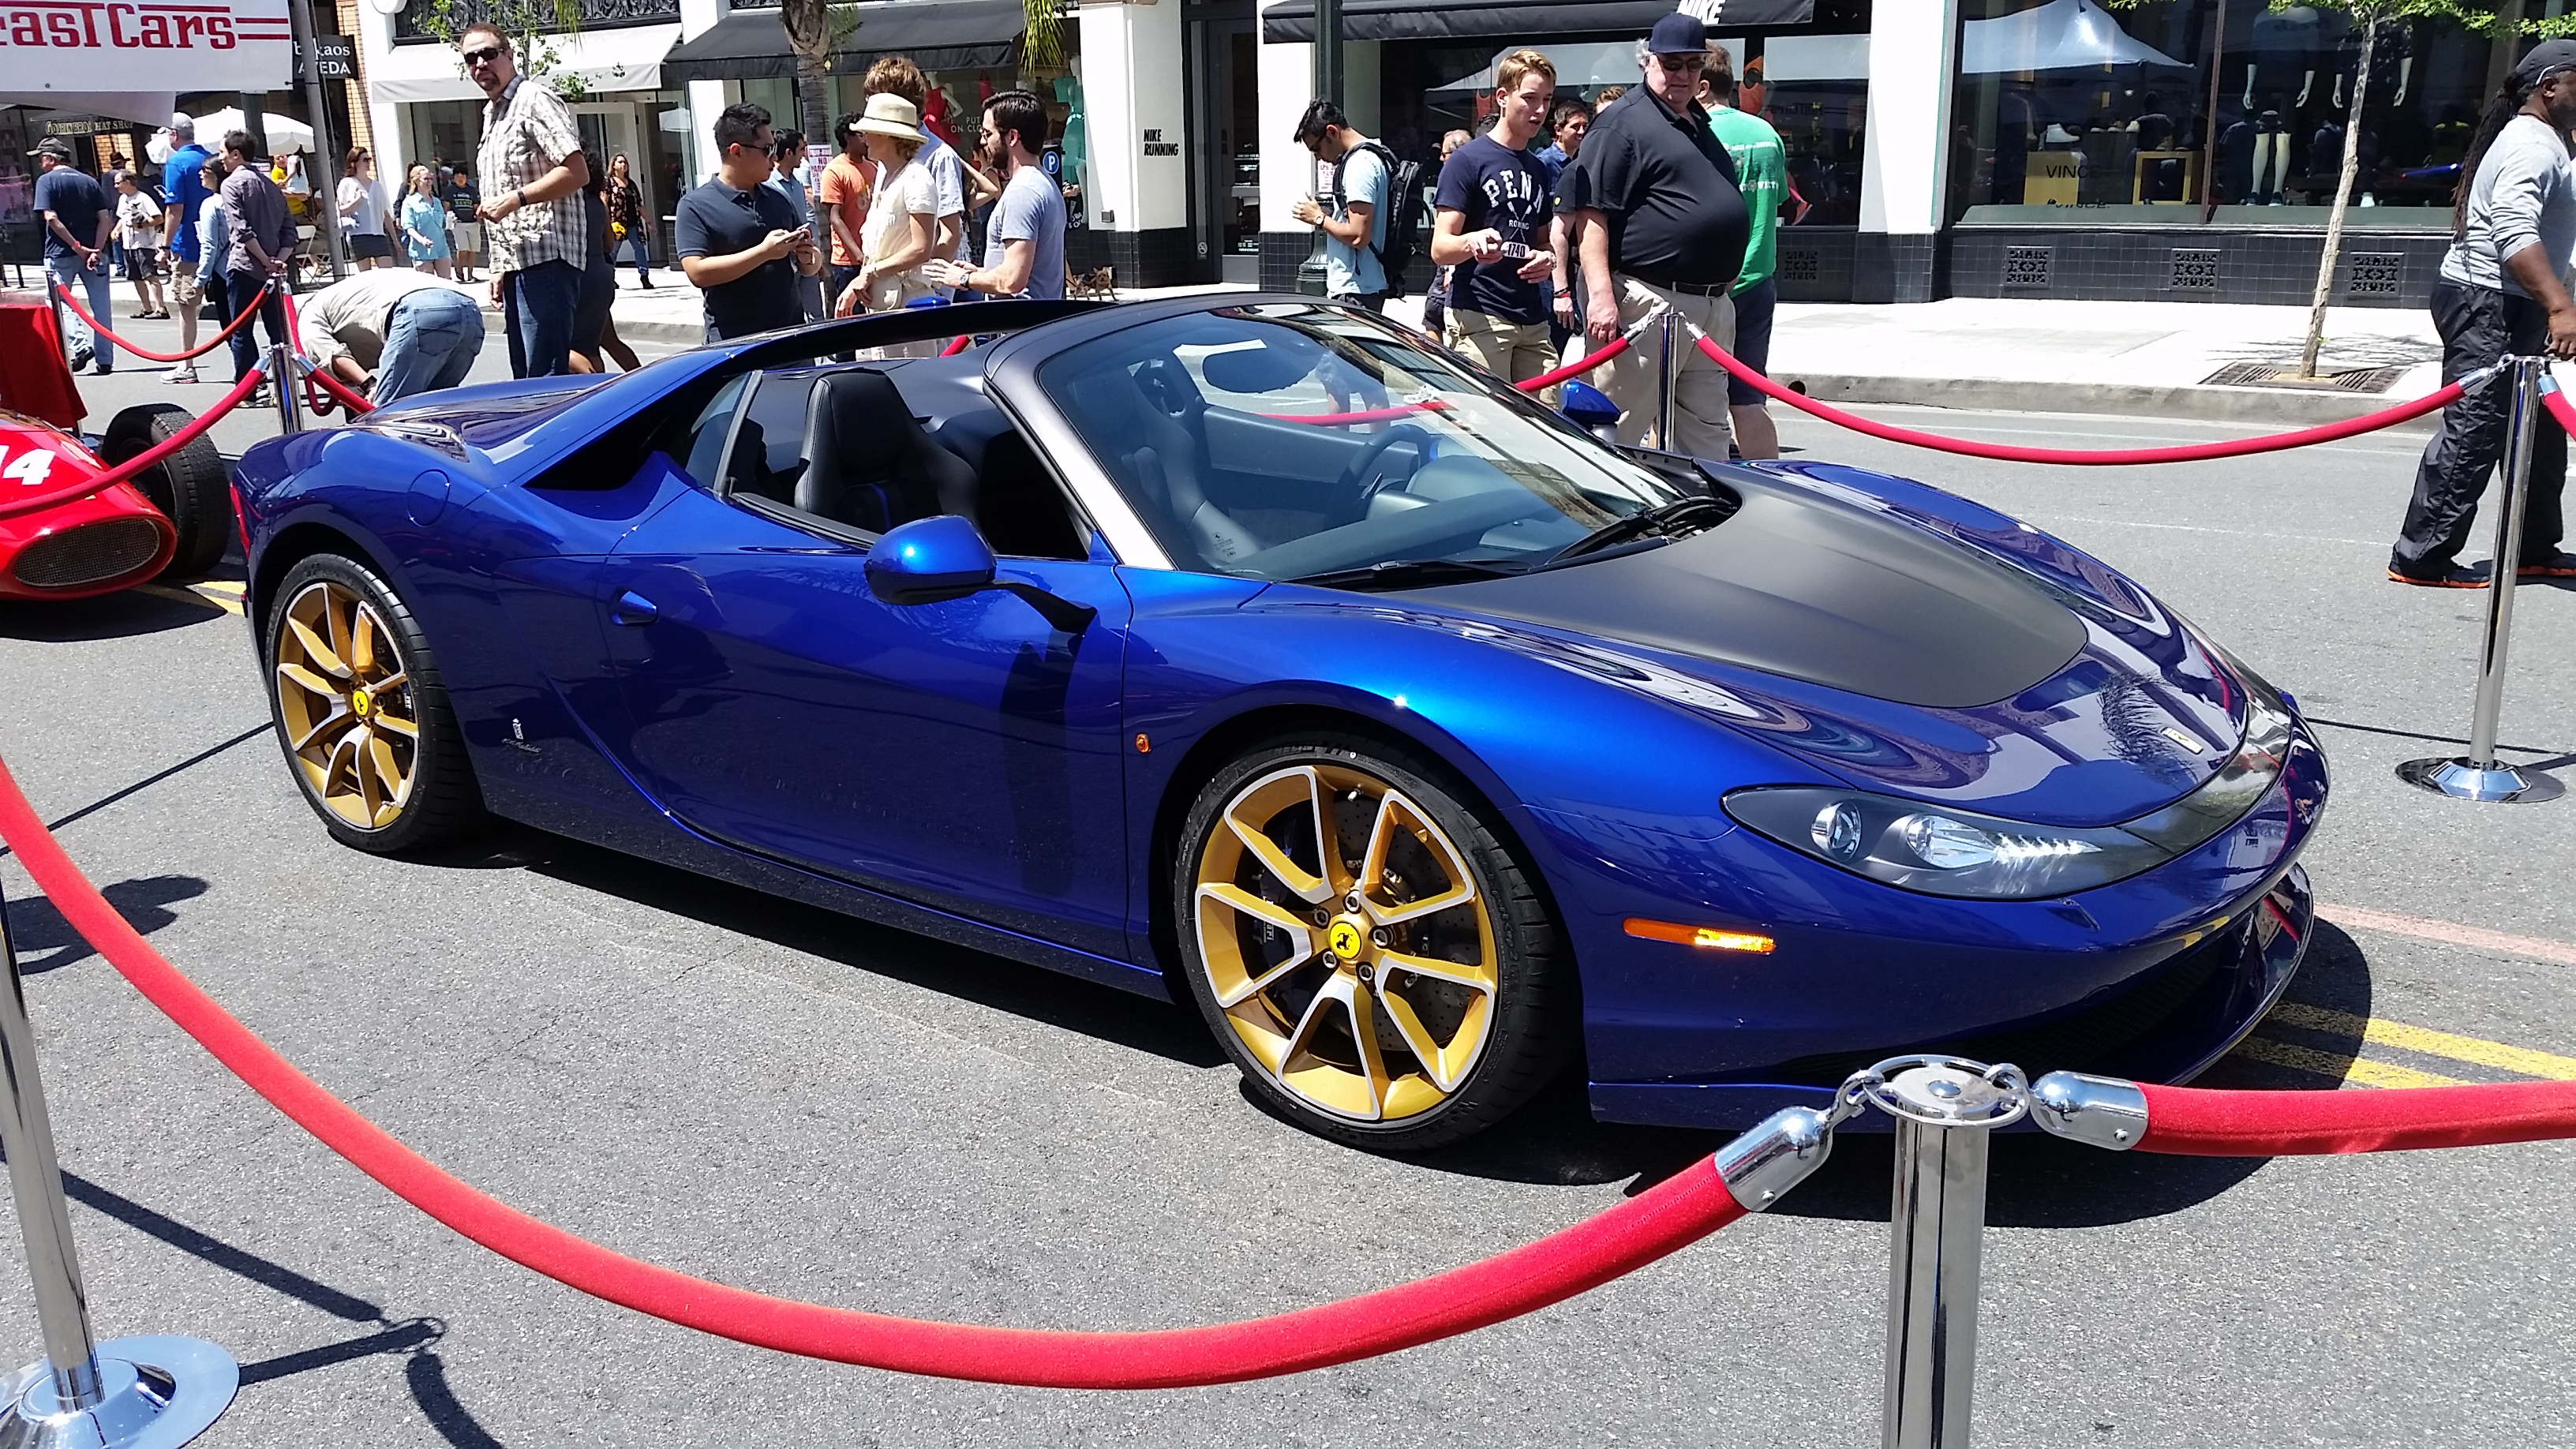 The Best Car Show Ever The Unmuffled Auto News - Beverly hills car show